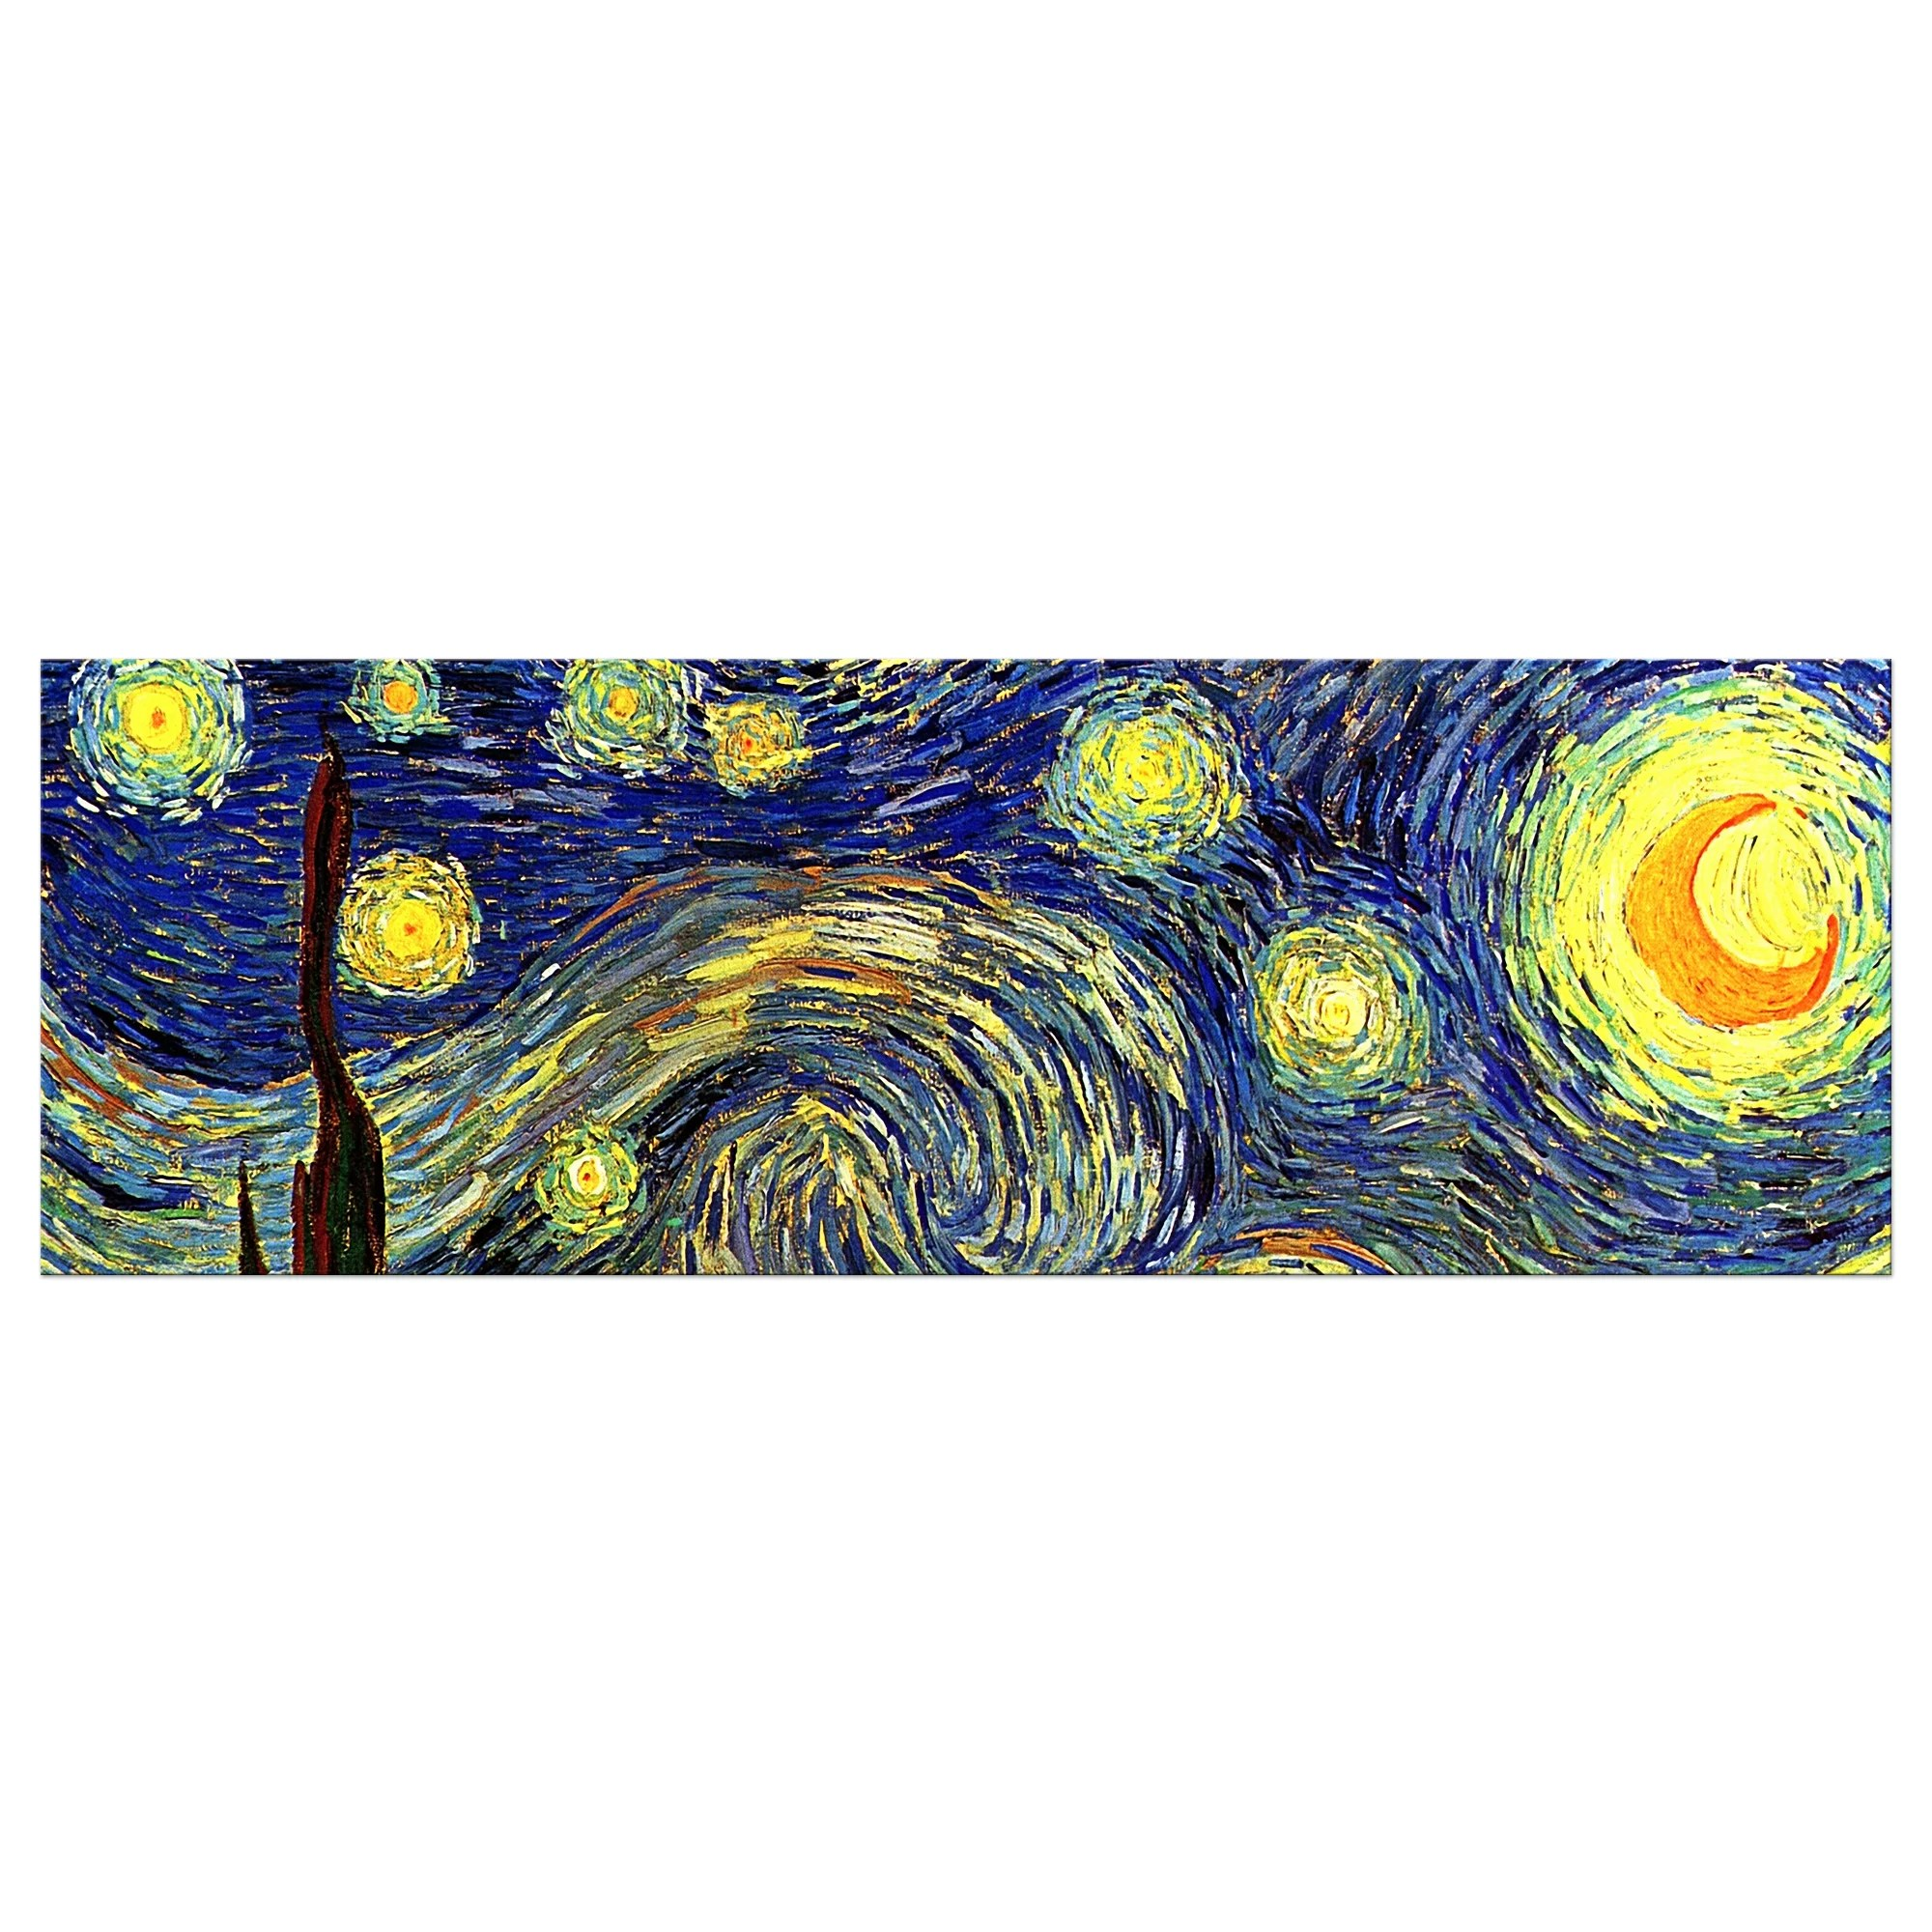 Kunstdrucke Van Gogh Starry Night By Vincent Van Gogh Framed Oil Painting Print On Canvas